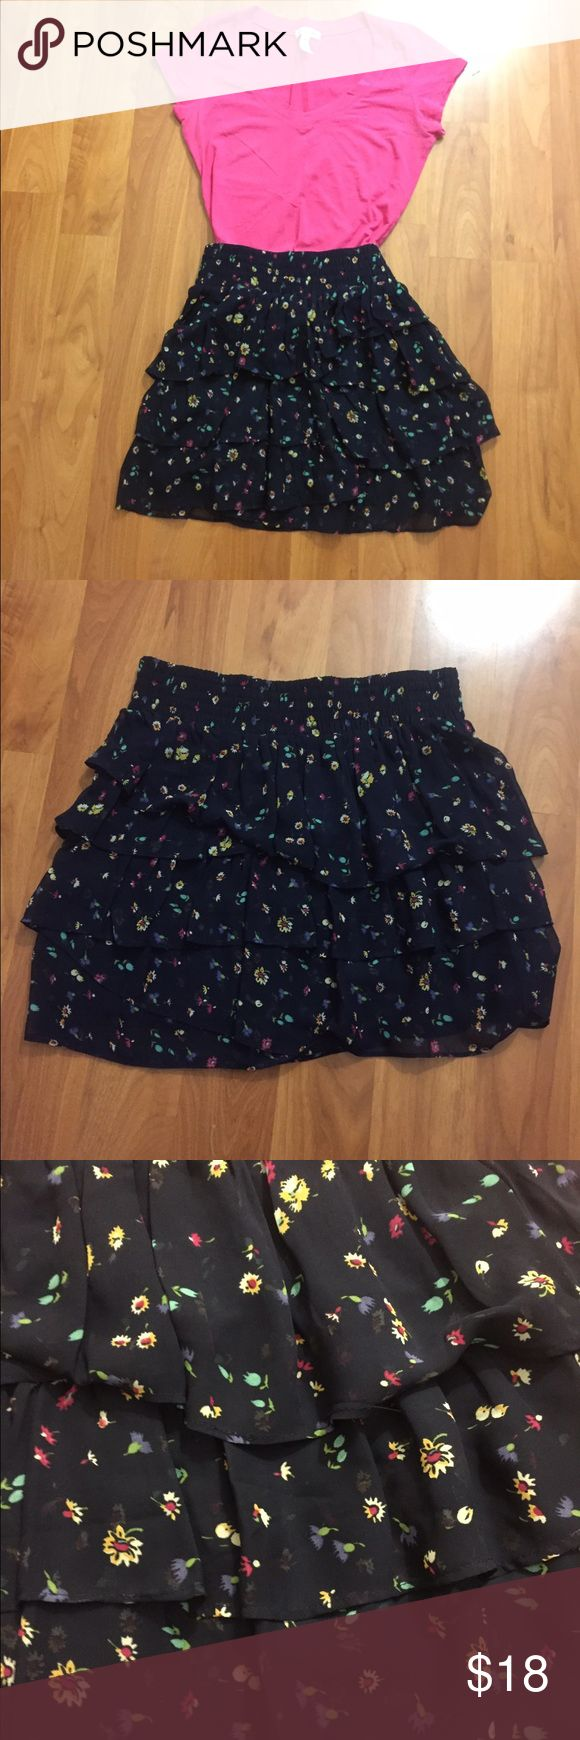 American eagle dark blue floral layered skirt This dark blue layered skirt with floral print is perfect to add with a colored tank or fitted tee to bring out the flowers. Pair makes it look like a dress. The pink fitted tee pictures here is on sale in my closet as well. American Eagle Outfitters Skirts